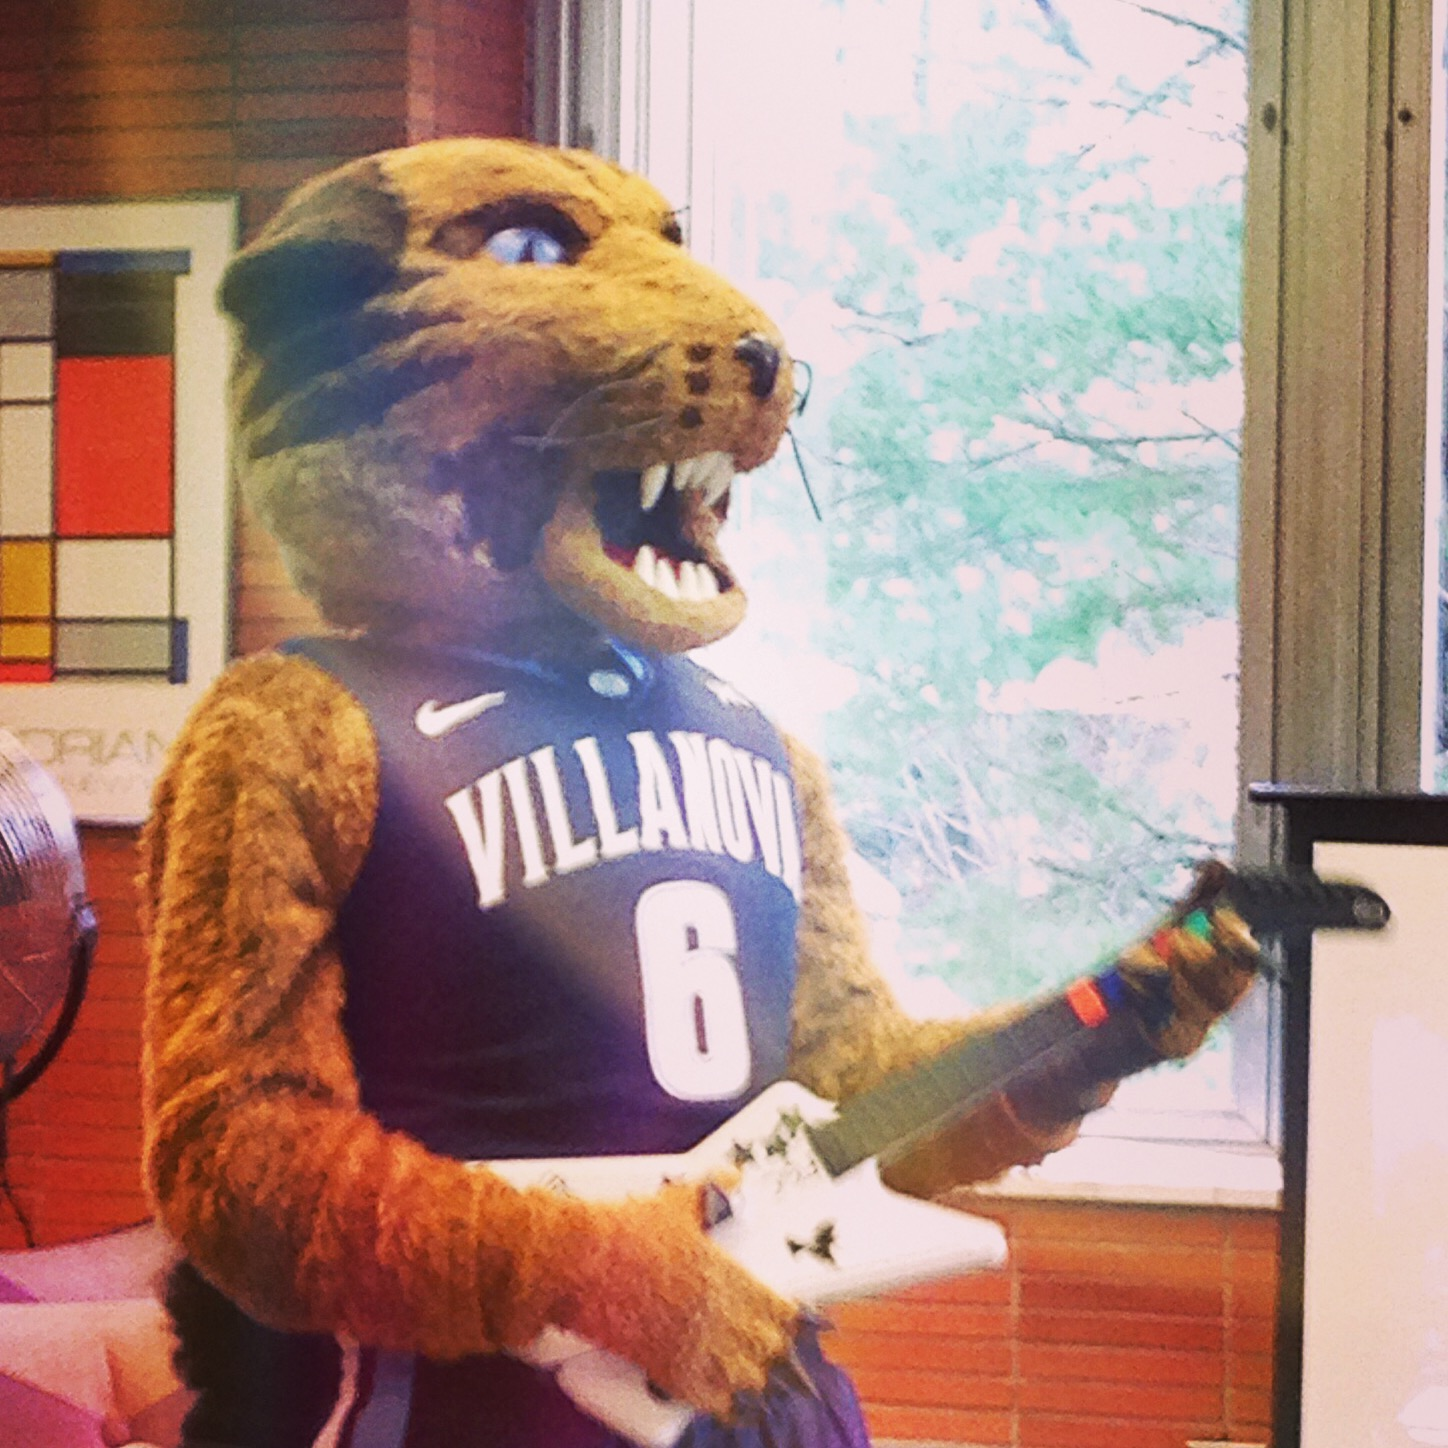 "As 2014 rocks on into 2015, we want to thank all of the Villanova Community for a wonderful year. As Edith Lovejoy Pierce once said, ""the book is called Opportunity and its first chapter is New Year's Day."""